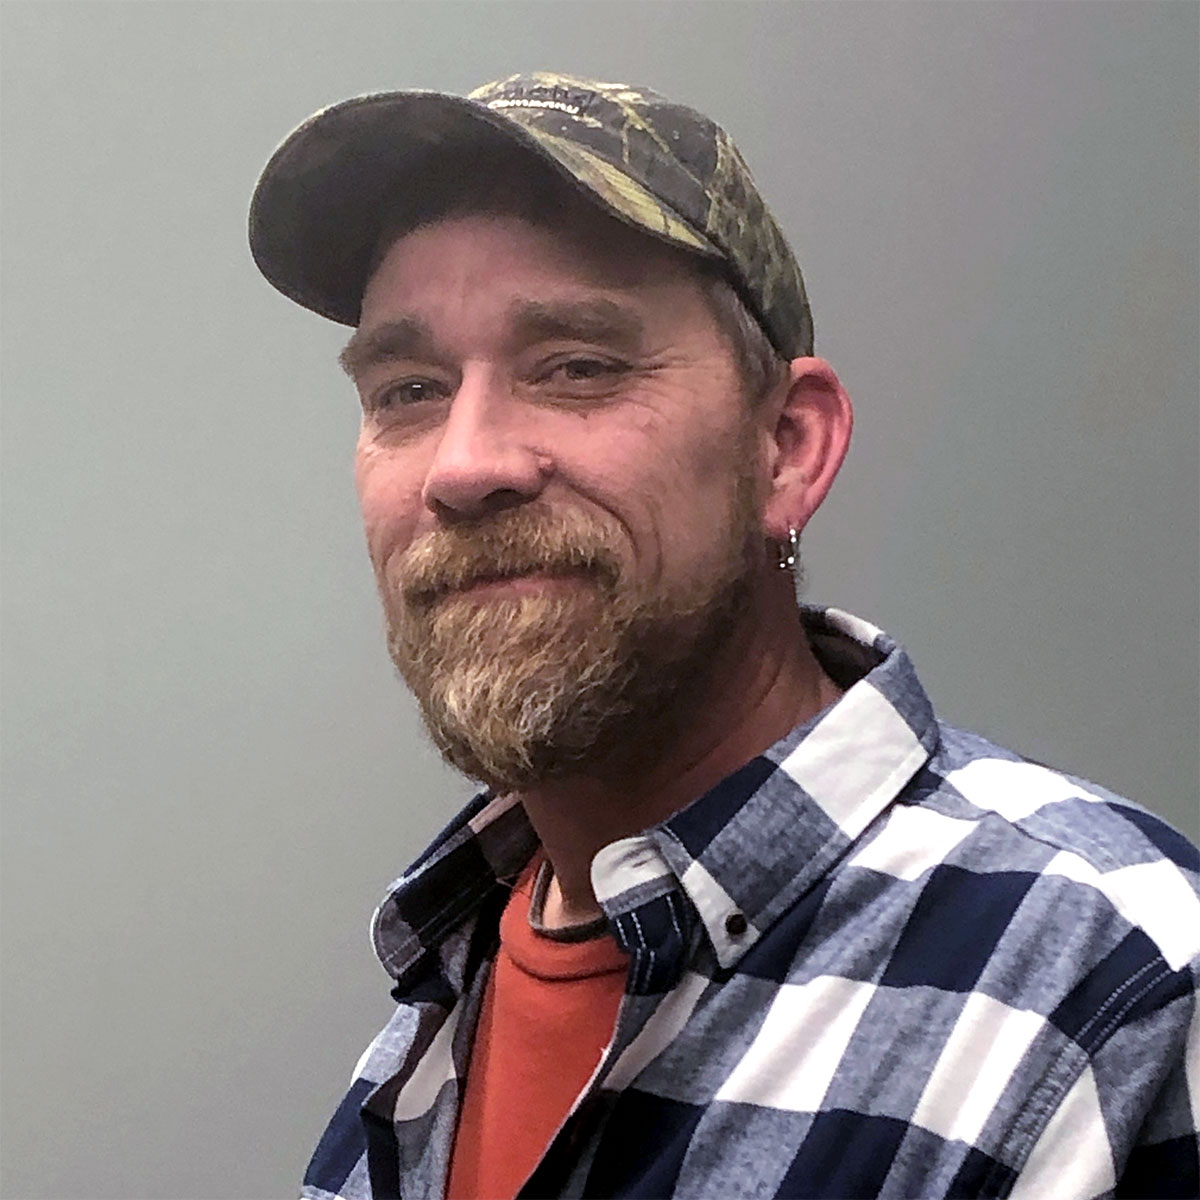 A photo of Chris Field, Field Team Leader